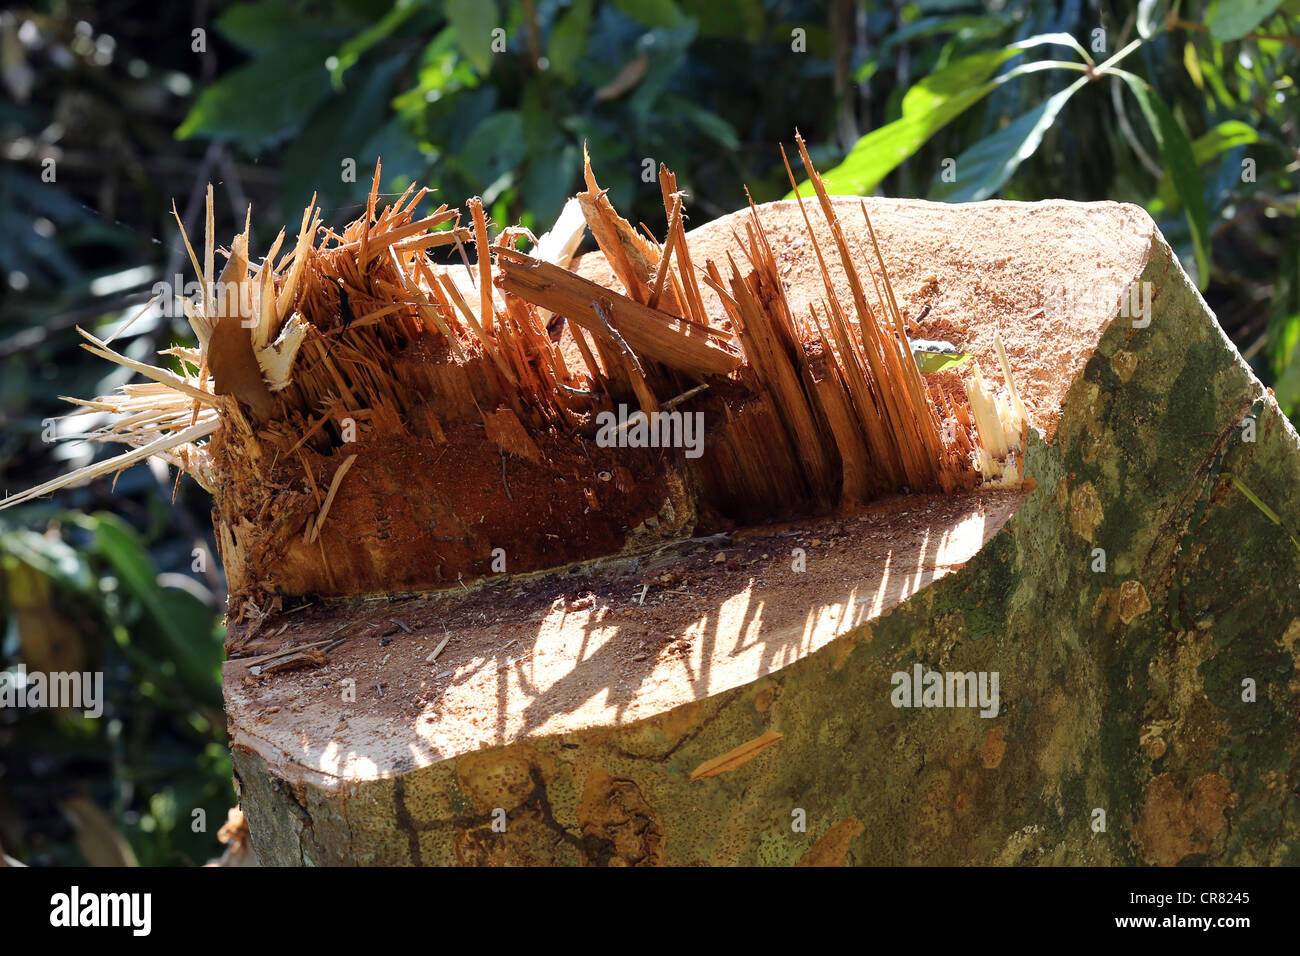 Deforestation, stump of a felled tree in a log clearing area, Papua New Guinea - Stock Image